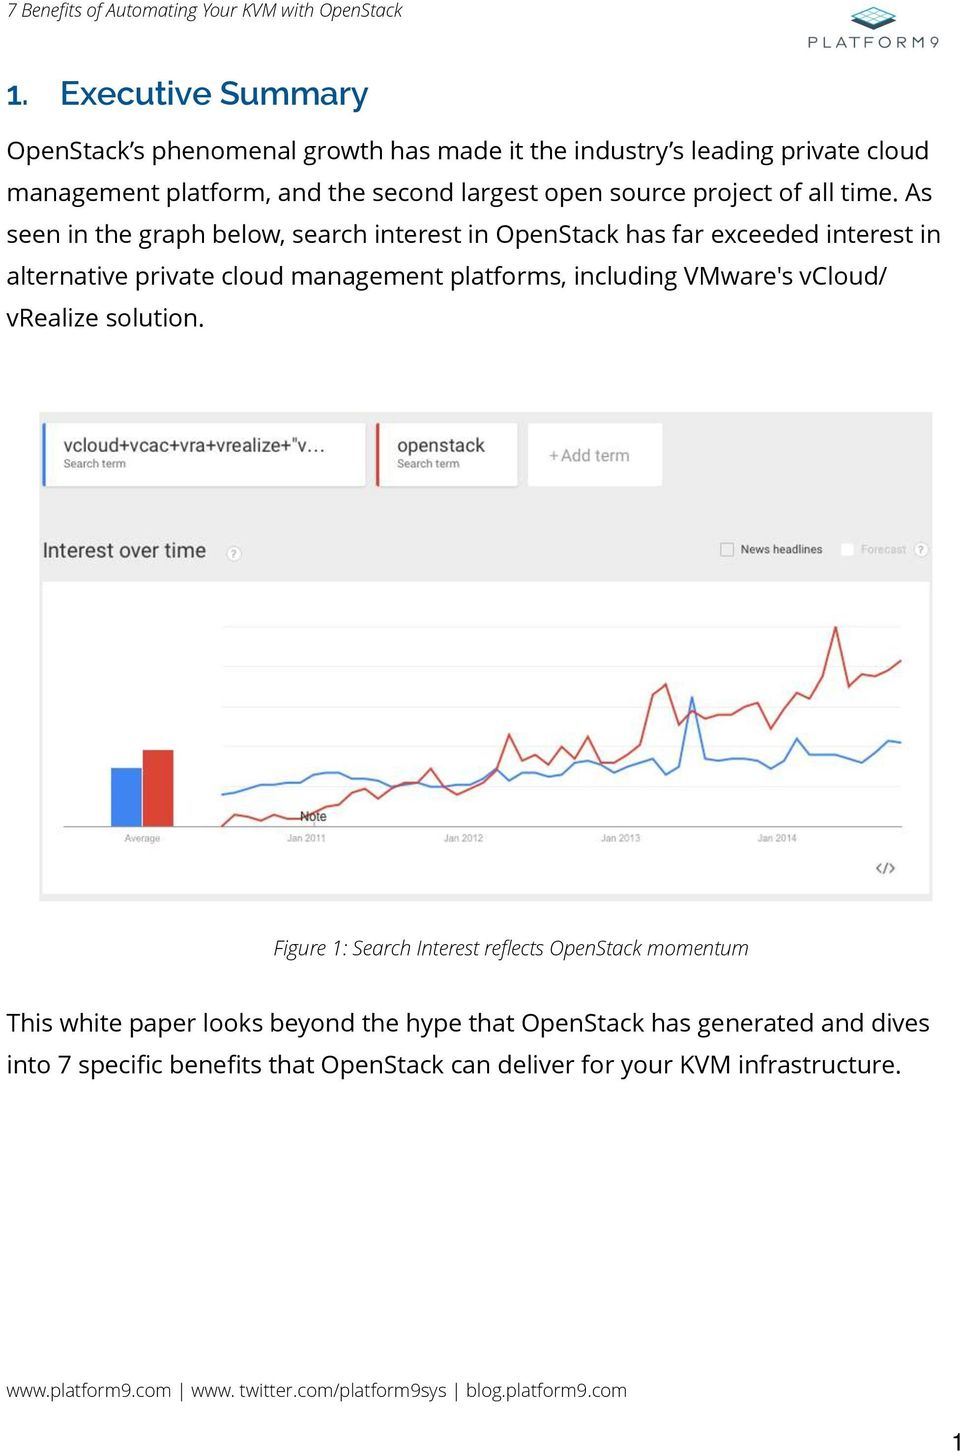 As seen in the graph below, search interest in OpenStack has far exceeded interest in alternative private cloud management platforms,